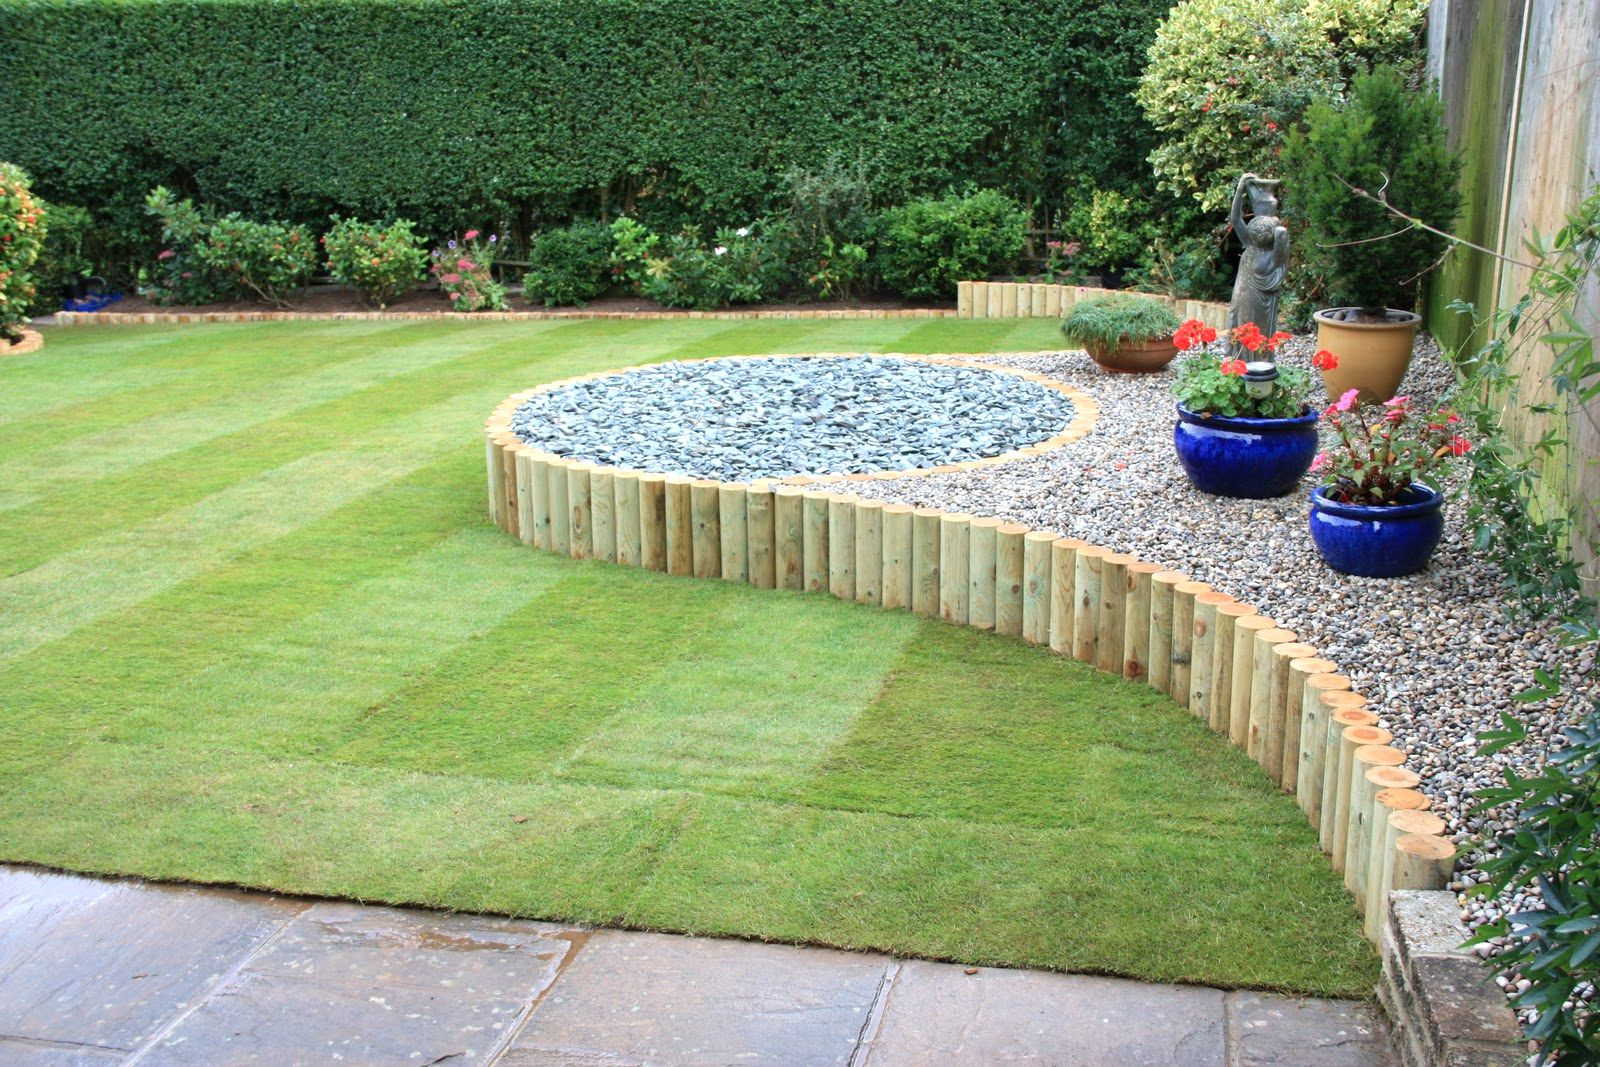 Superieur Braintree Garden Design And Landscaping Services